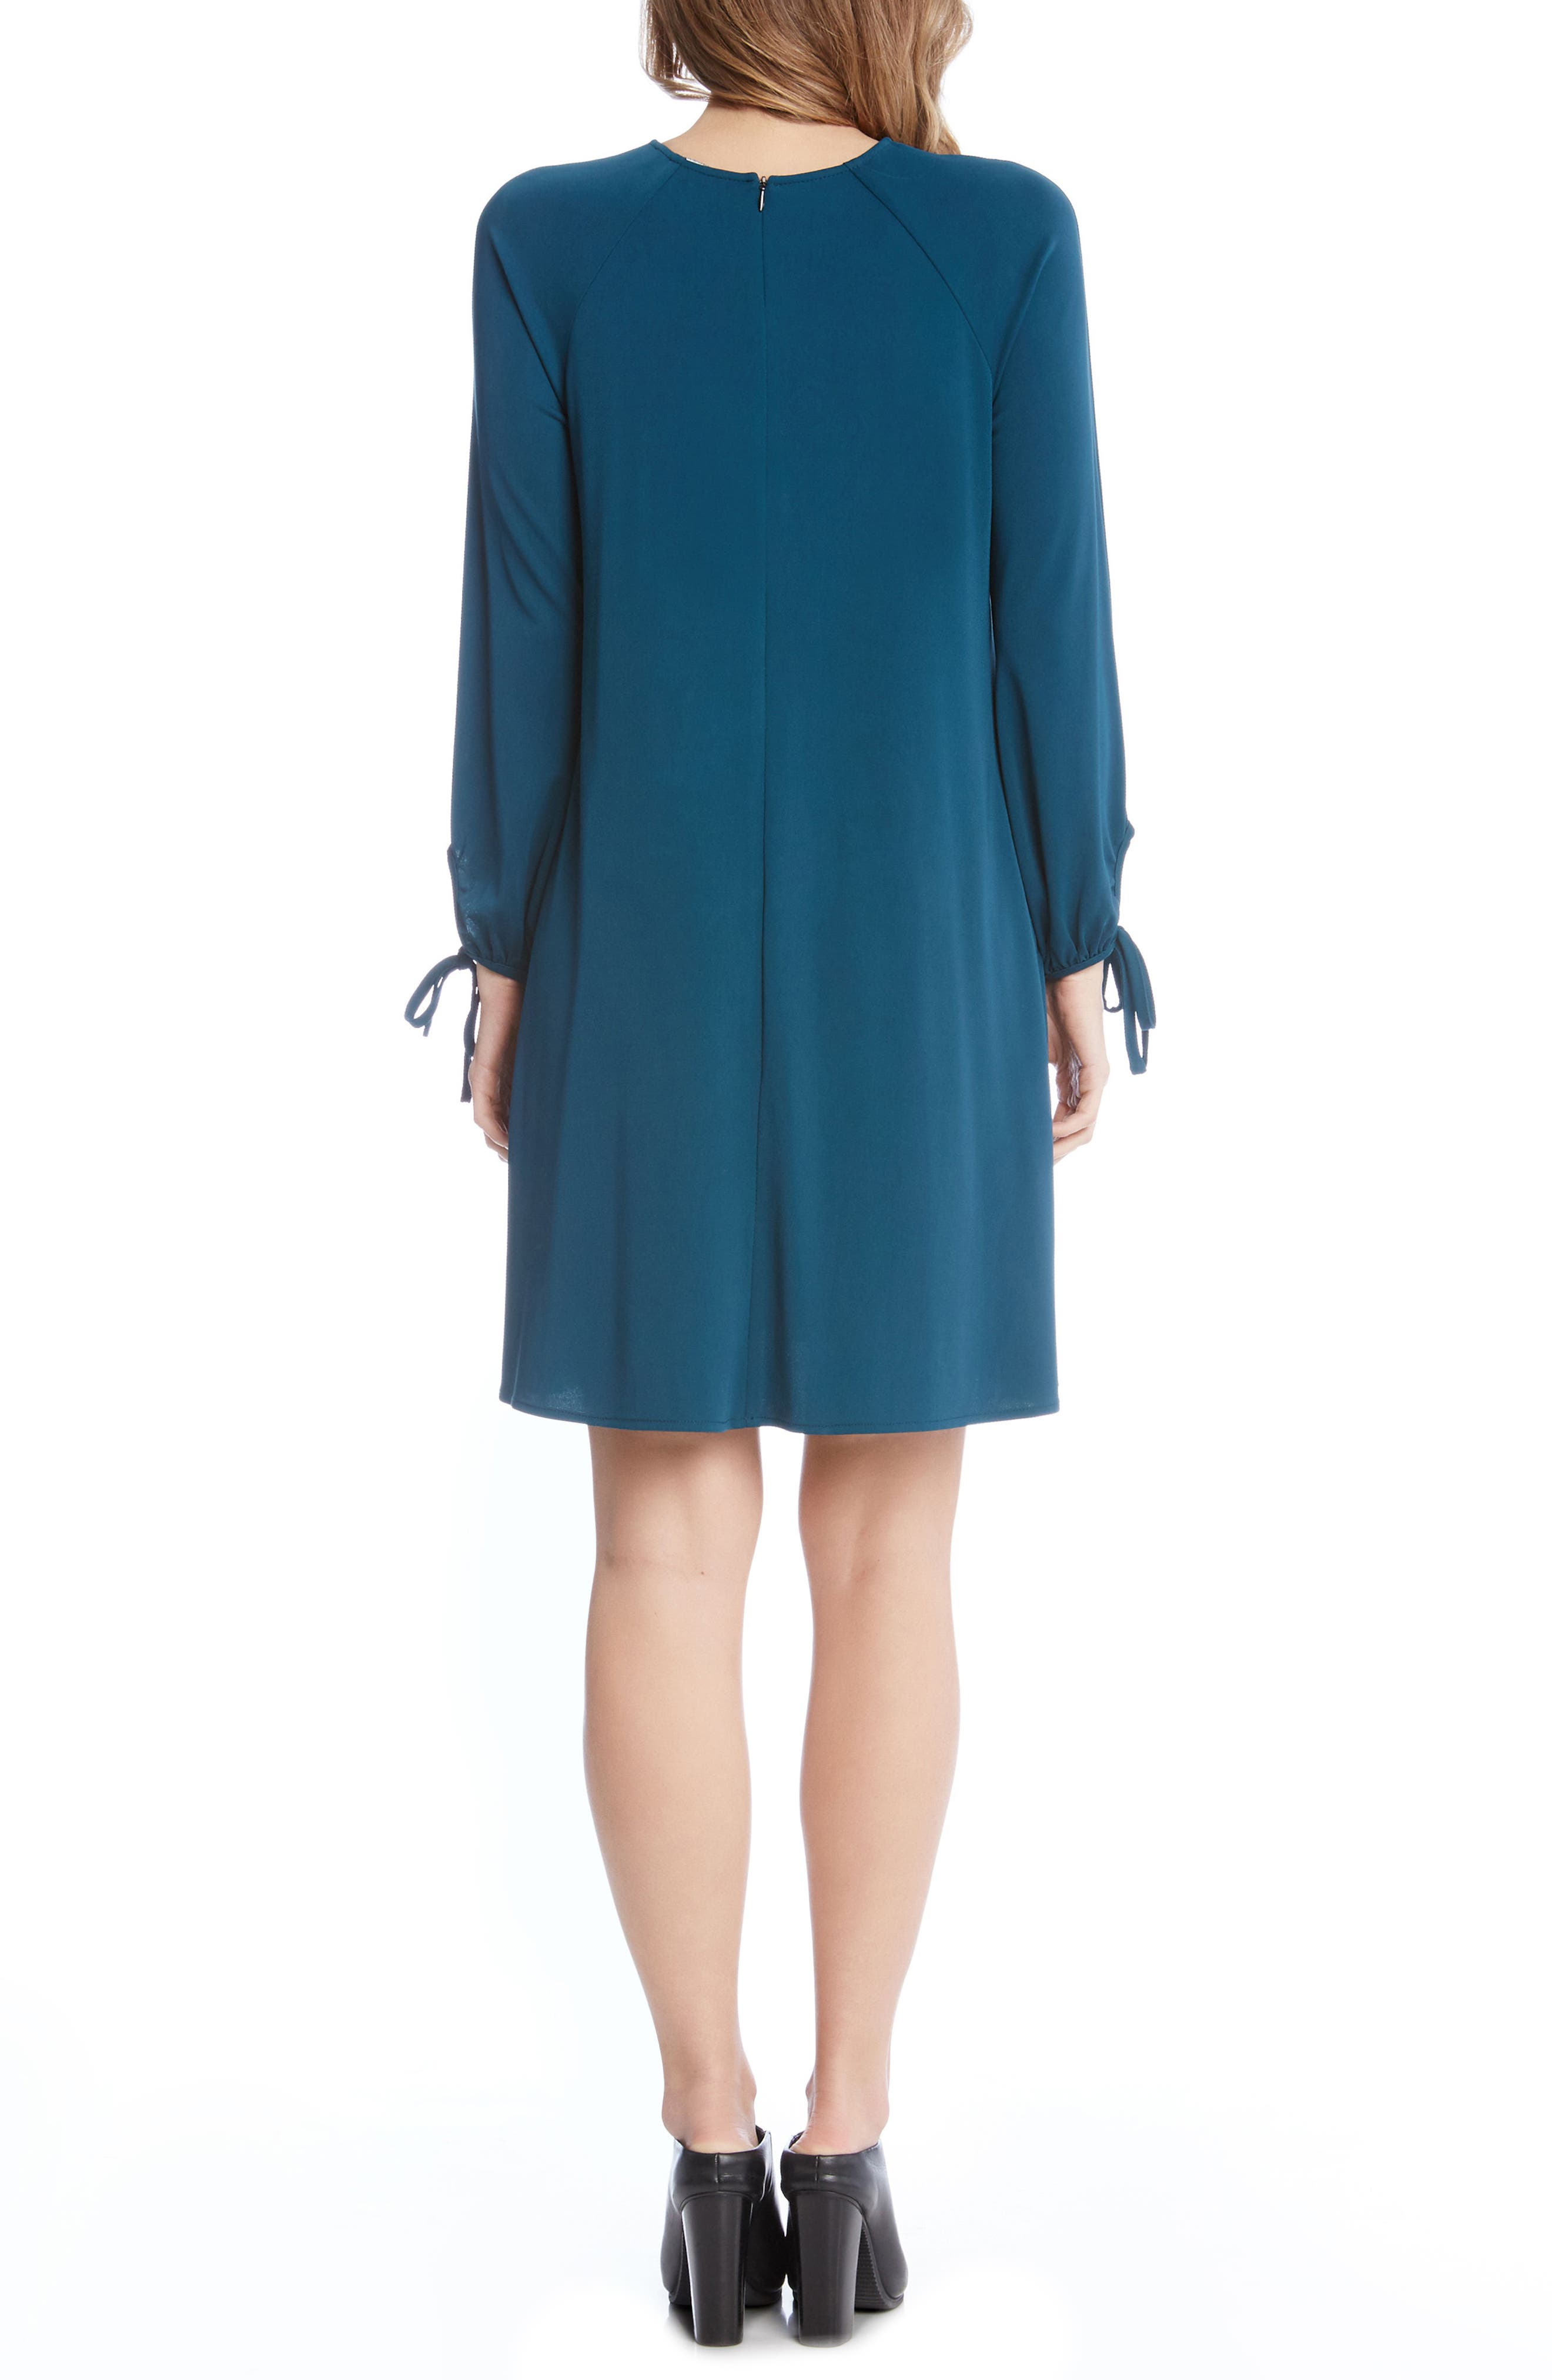 Tie Sleeve Shift Dress,                             Alternate thumbnail 2, color,                             340